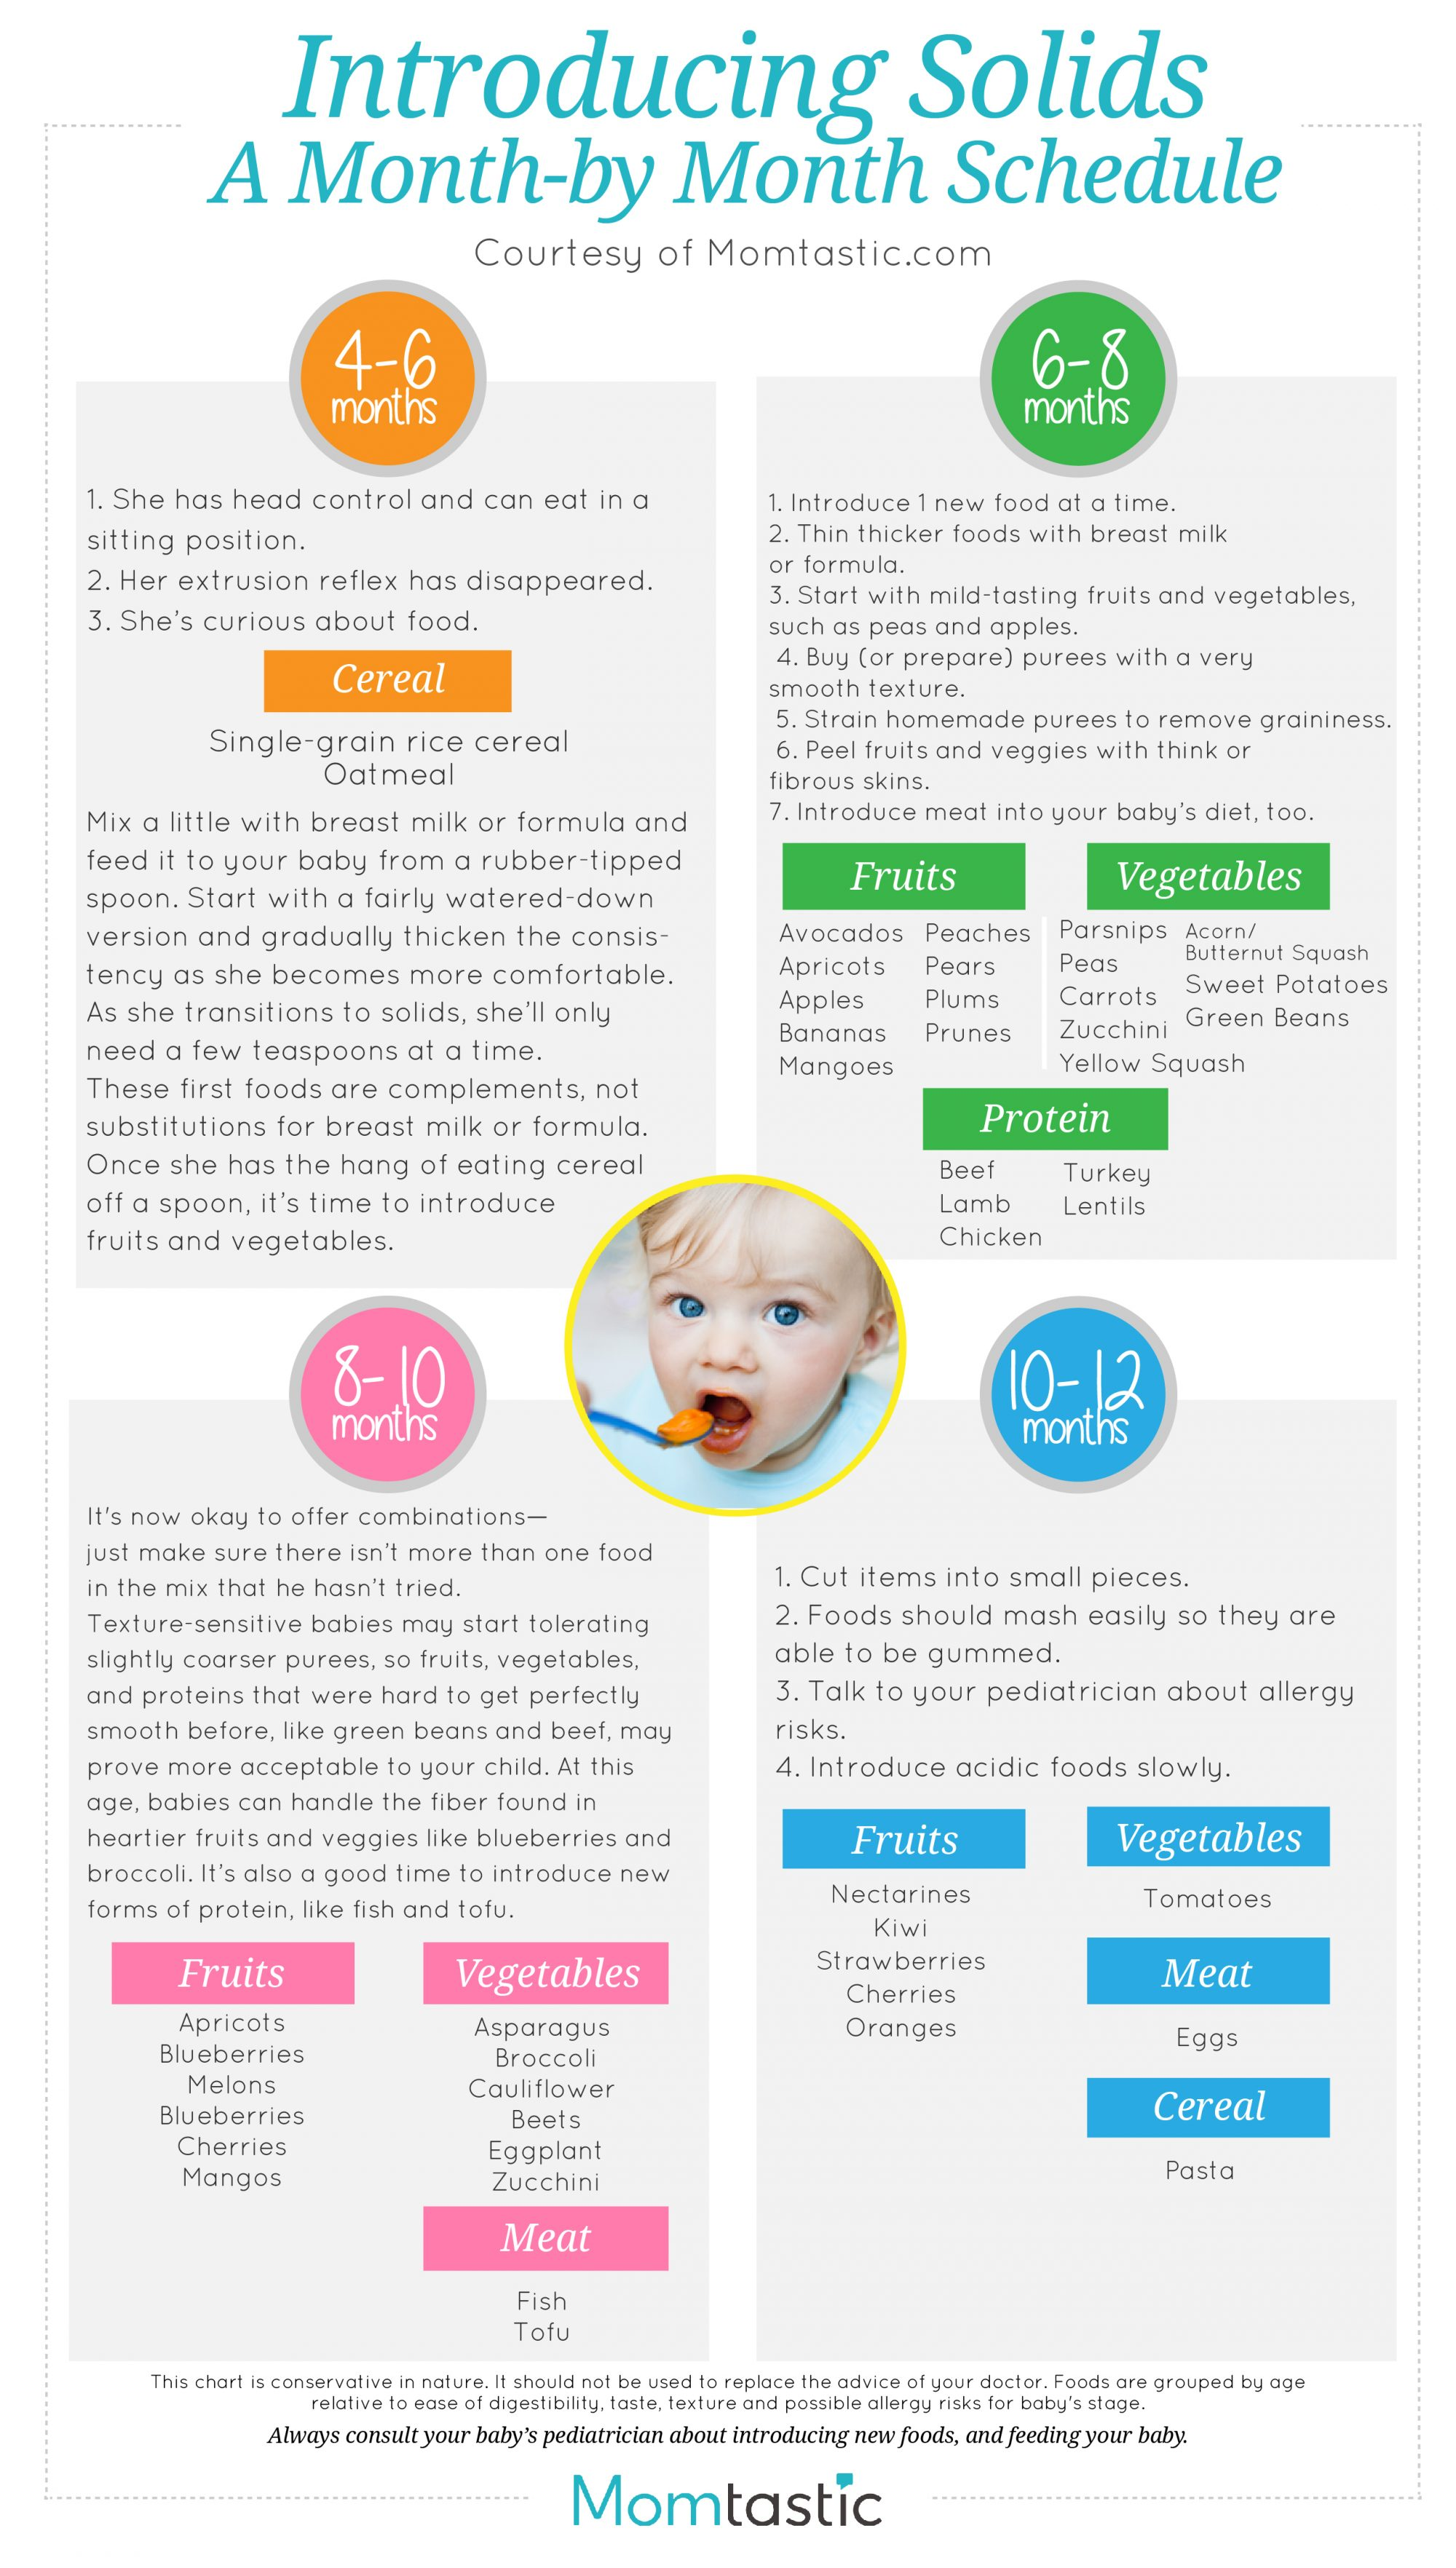 Introducing Solids to Your Baby, Solid Food Charts for Introducing Solids to Your Baby and Infan ...